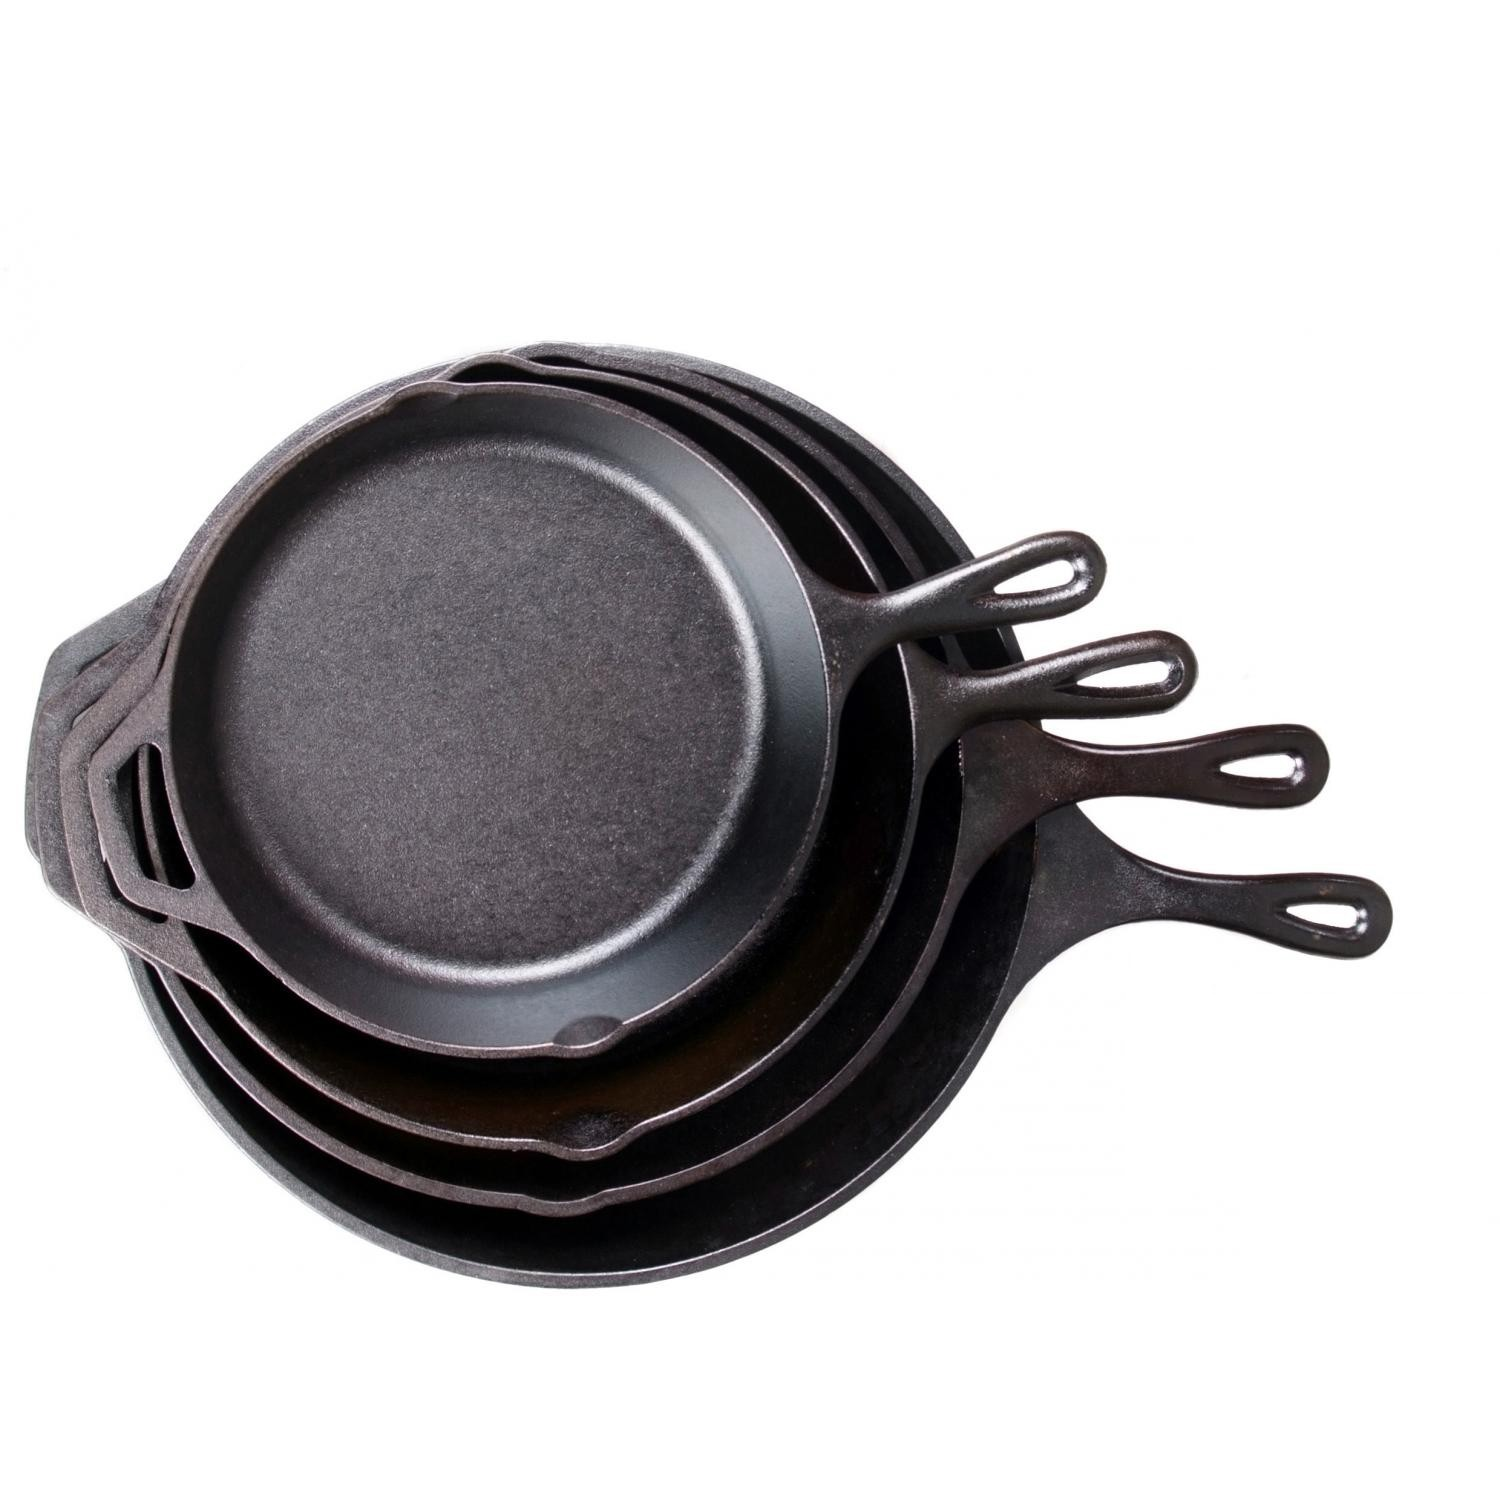 4. Lodge Cast Iron Everything  These babes are everything because they are timeless, easy to cook with, durable, and affordable! We love using these for frittatas, roasting vegetables, and make sweet treats. If you stock up, please get the cute petite skillet.... so perfect for Chelsie's muffie recipe!